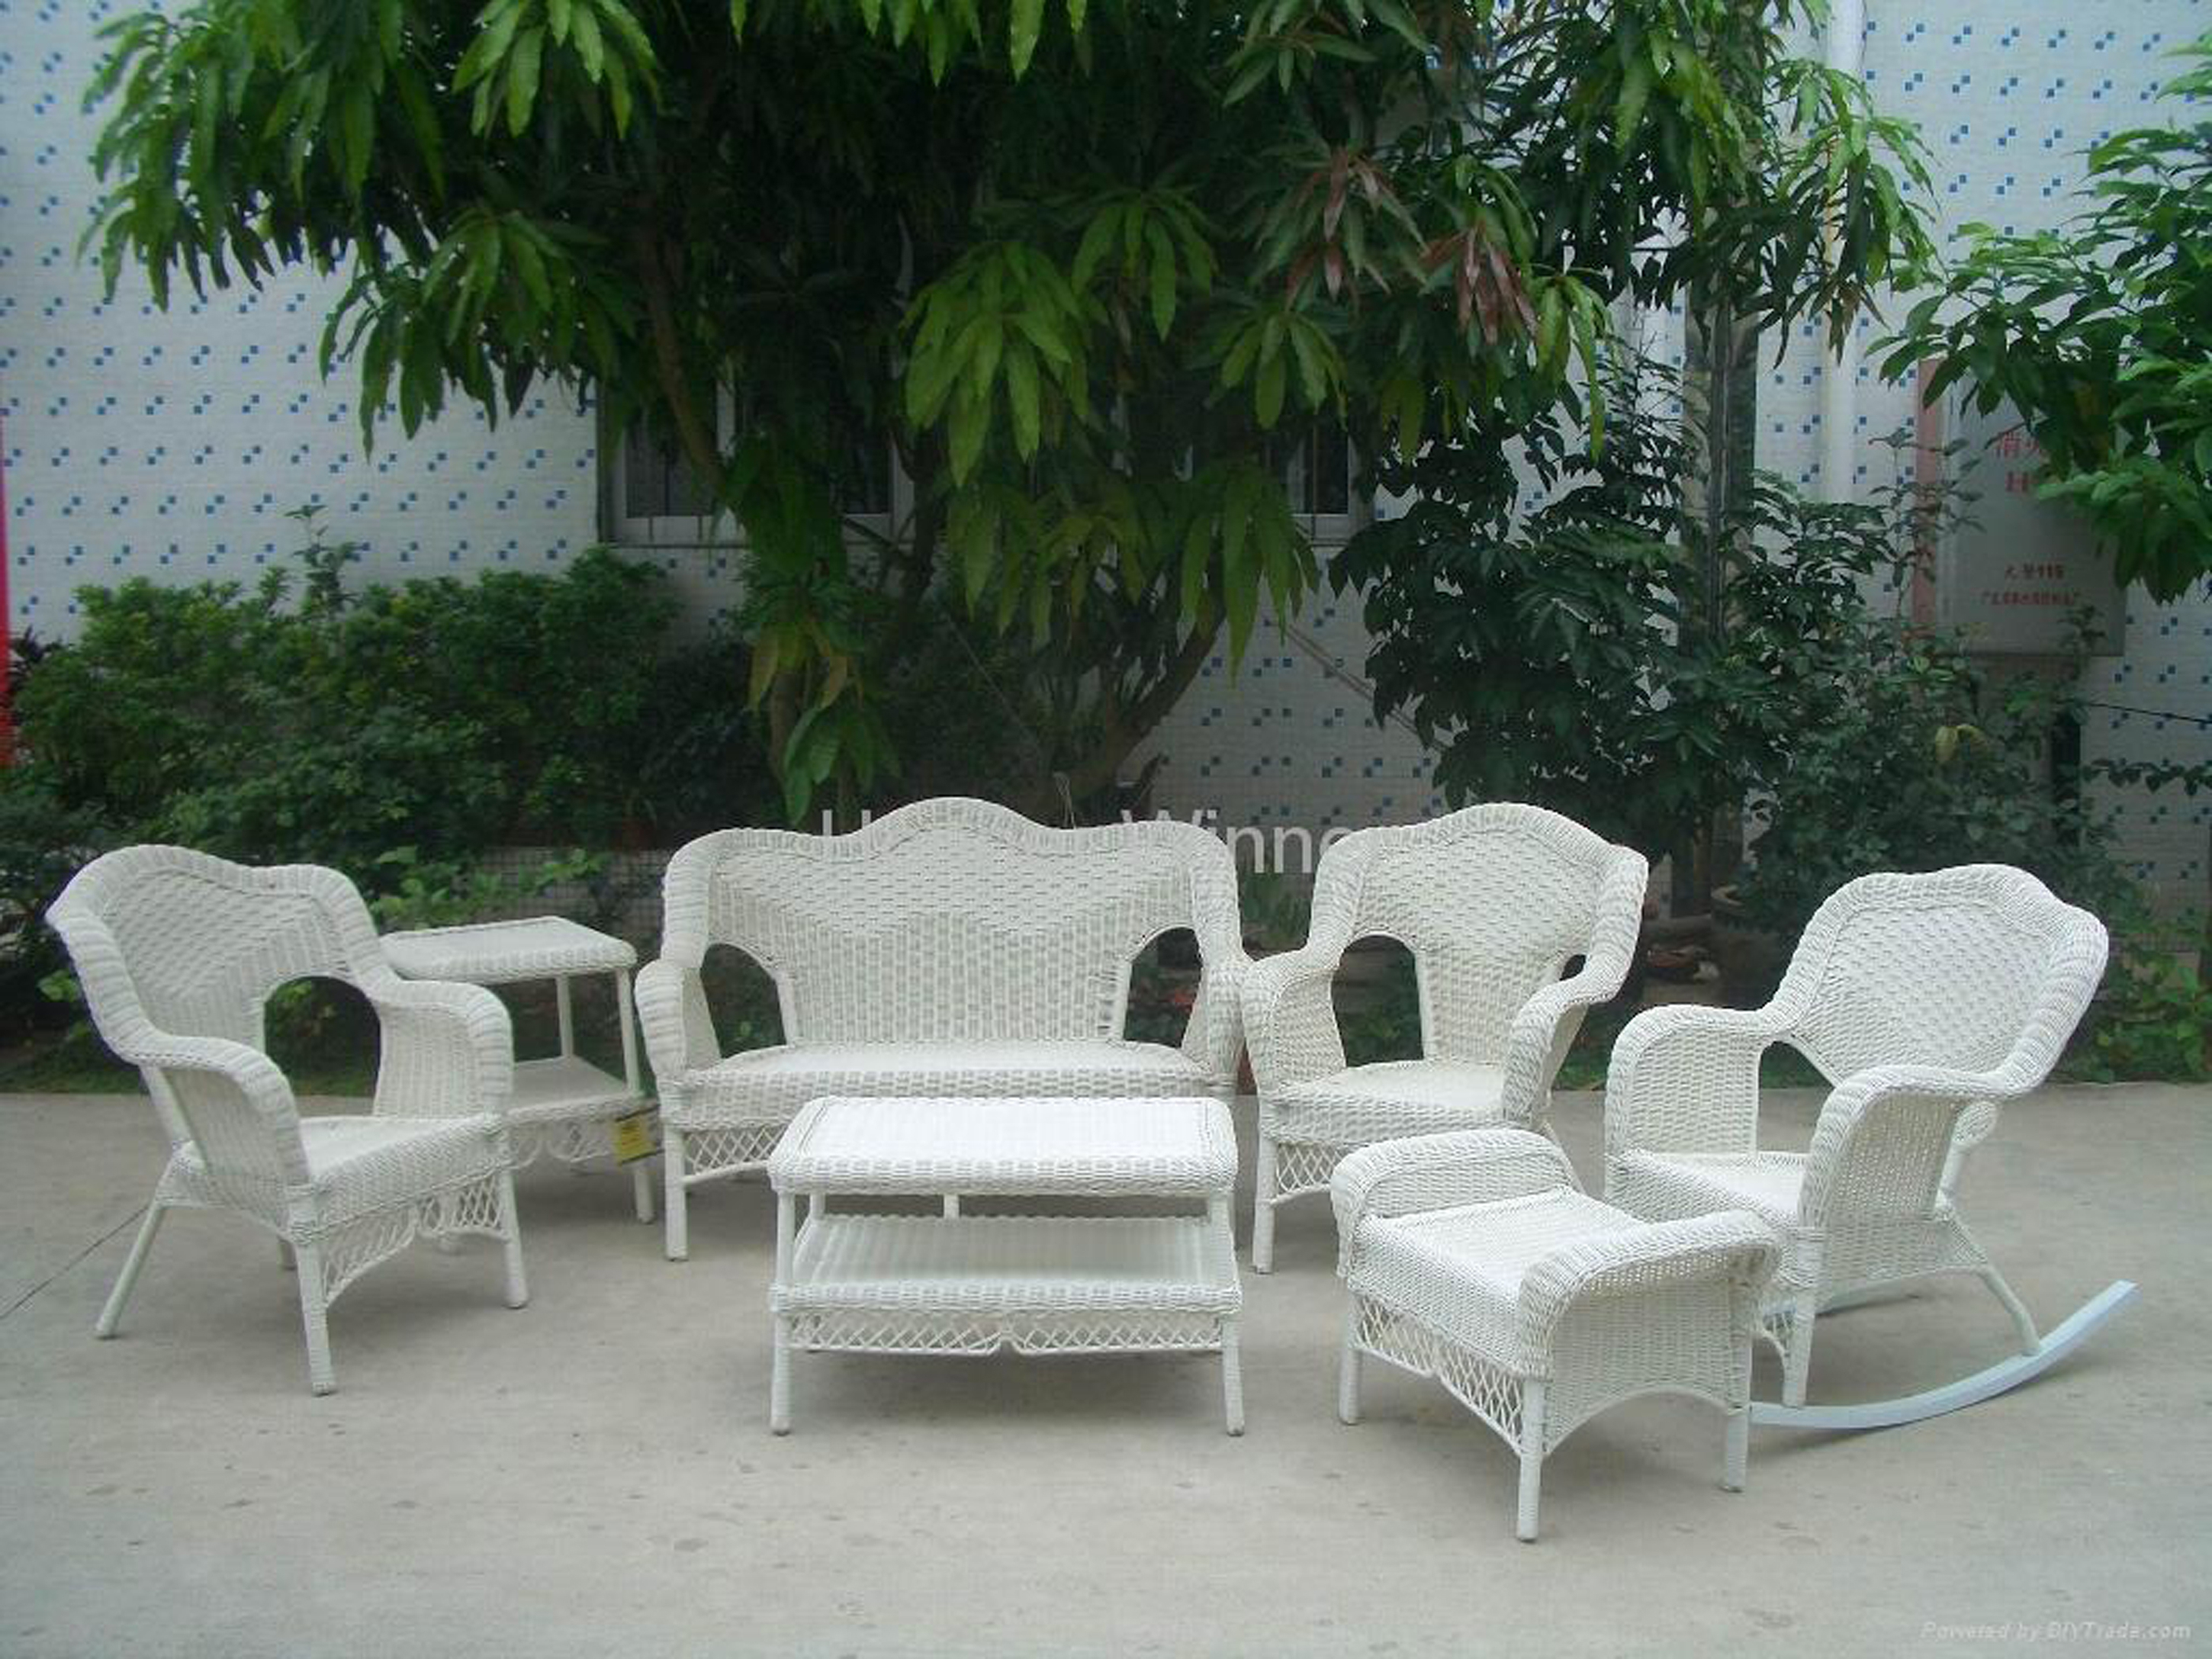 Lovely Outdoor Modern Wicker Design Idea With White Wicker Armchairs Lovable Outdoor Modern Wicker Design Ideas (Image 9 of 20)